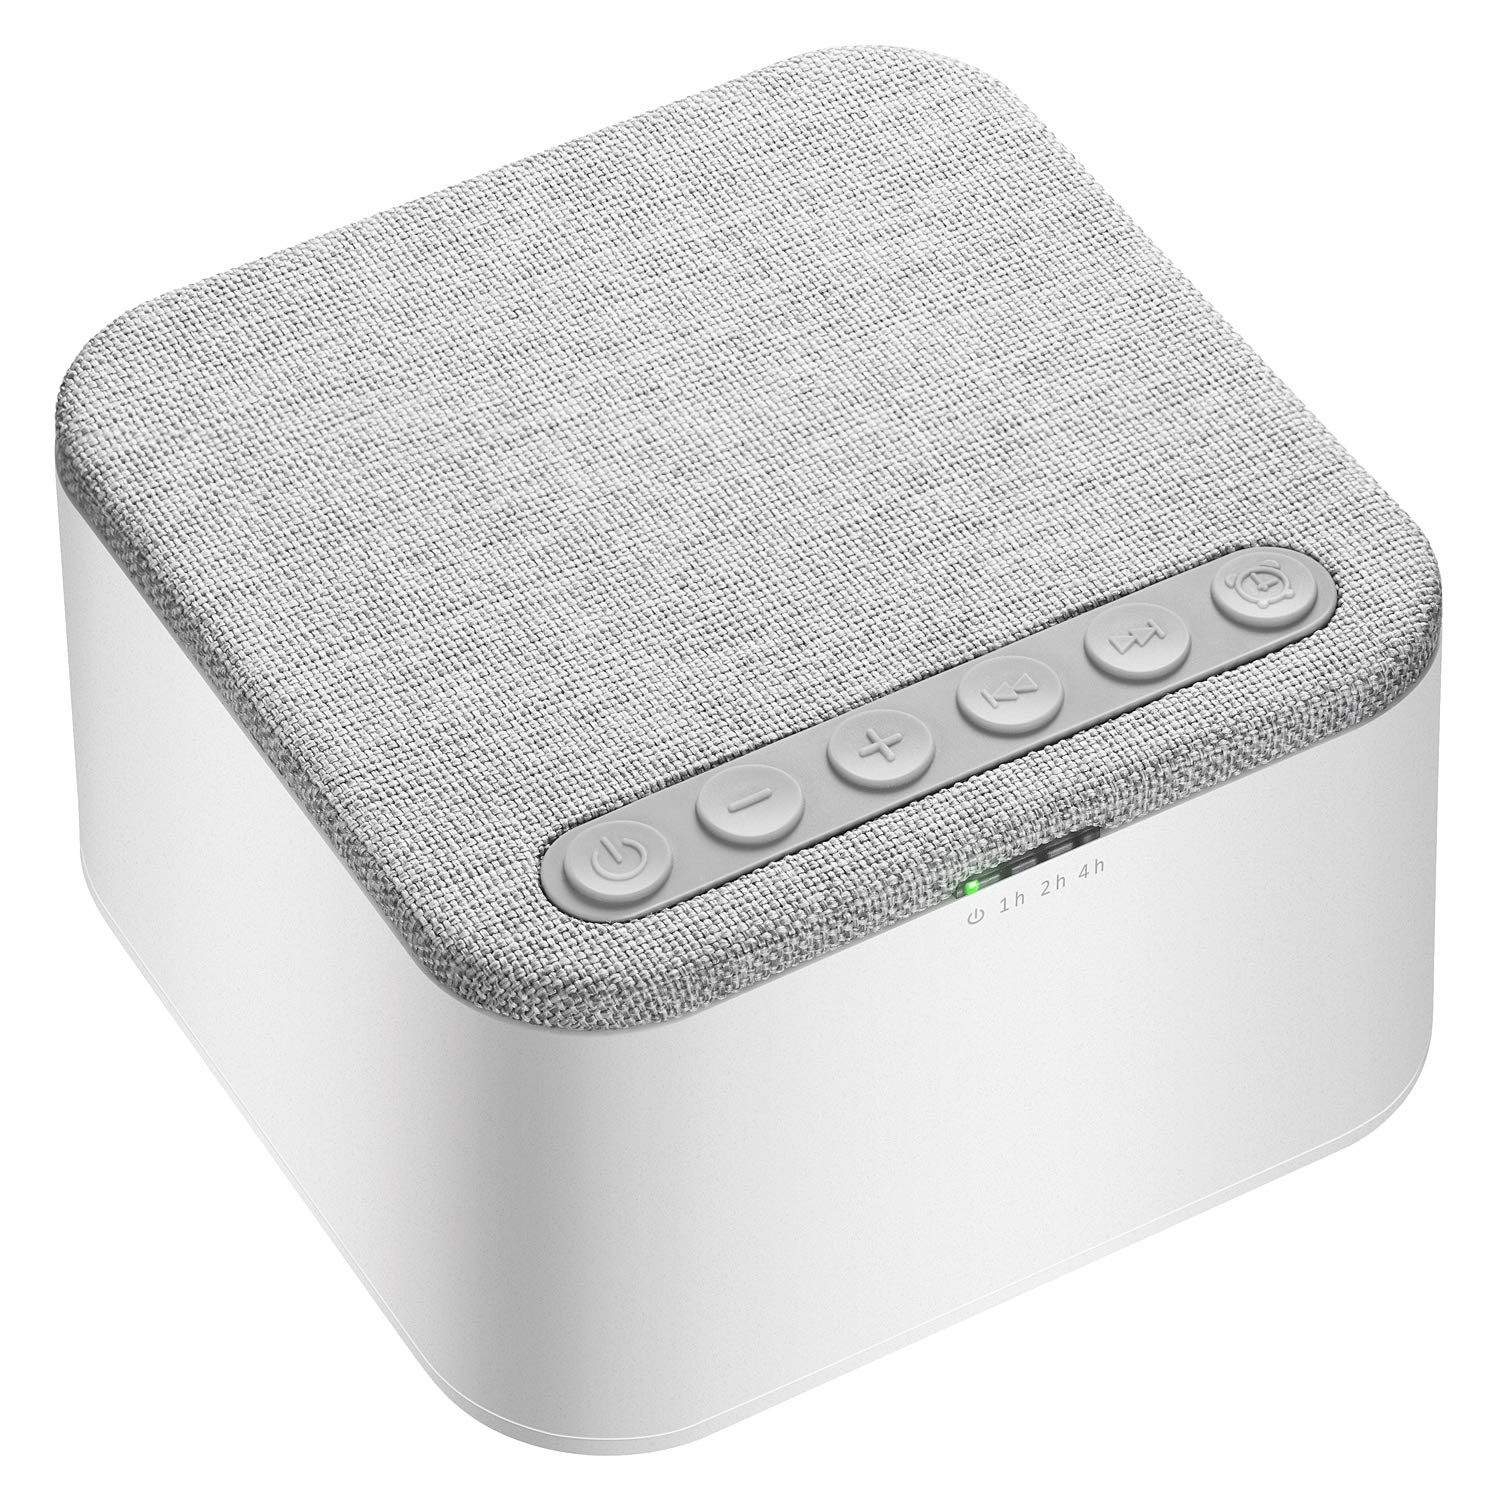 White Noise Machine, X-Sense Sleep Sound Machine with 40 Non-Looping Soothing Sounds and Memory Function, High Quality Speaker with 30 Levels of Volume and 7 Timer Settings for Home White